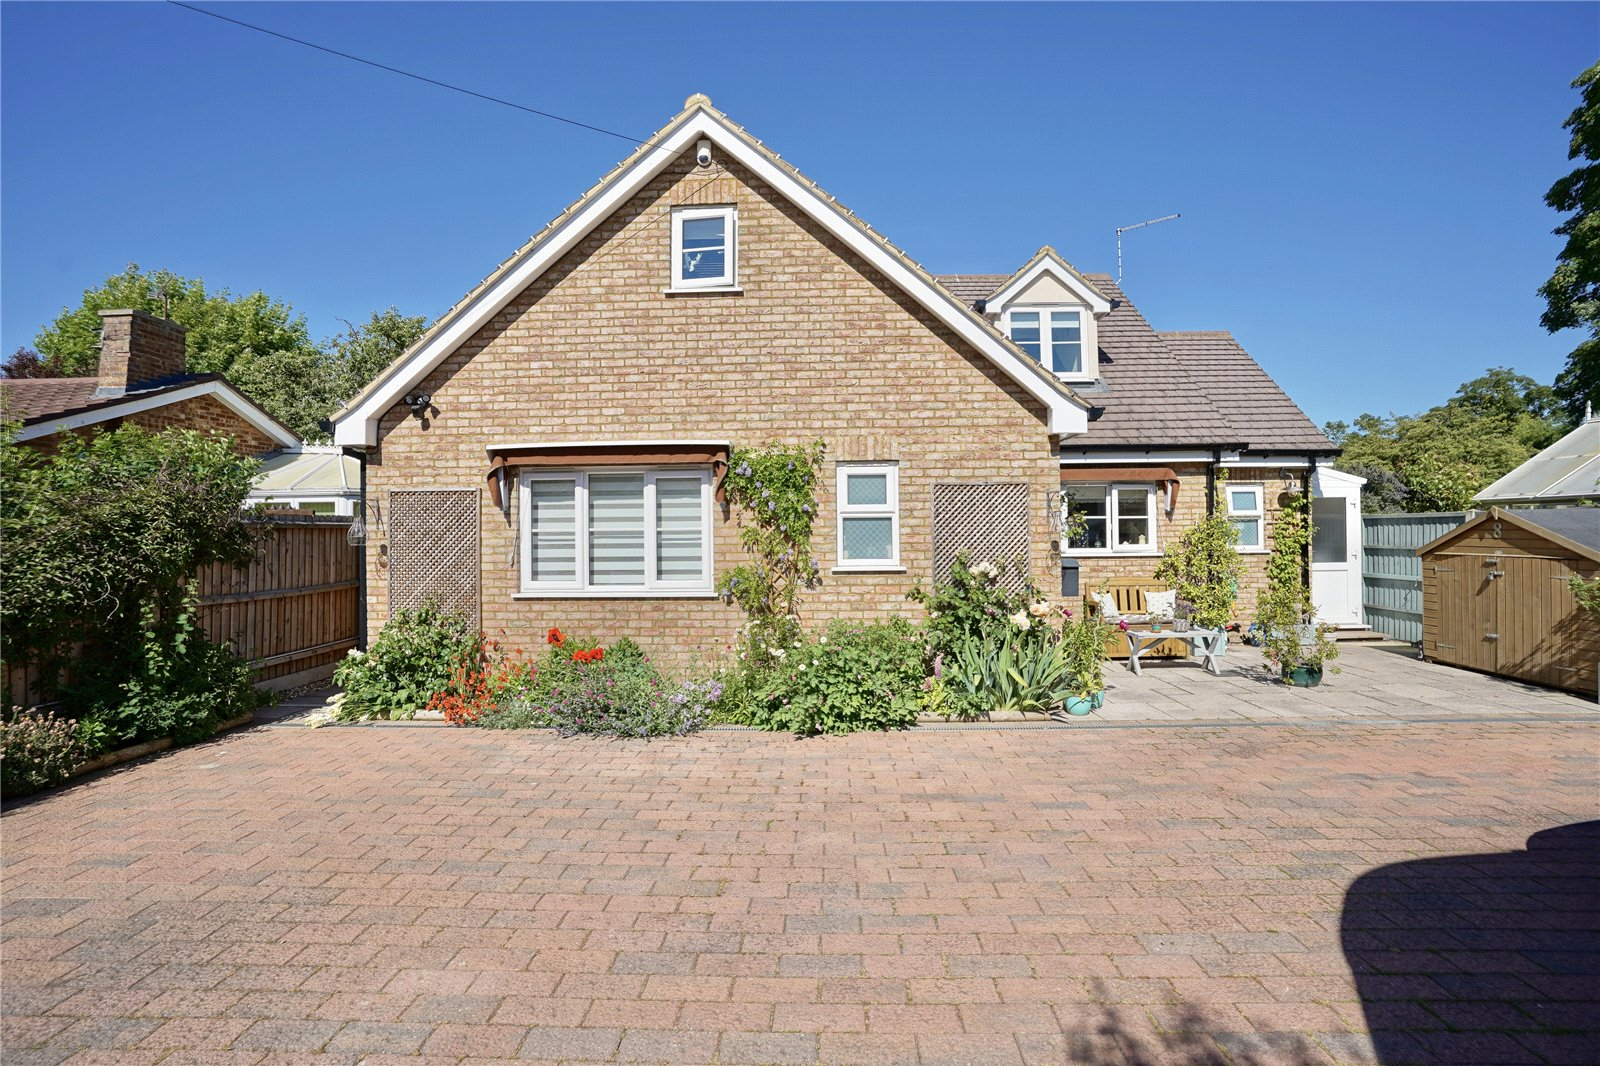 4 bed house for sale in Mill Lane, Little Paxton - Property Image 1